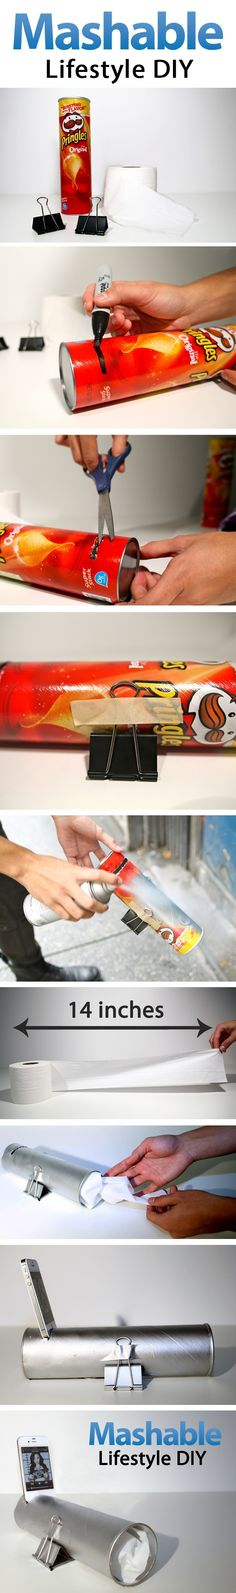 Turn a Pringles can into a low-cost amplifying phone speaker with this fun do-it-yourself (DIY) project. This amplifying speaker will give your music extra volume and a crisper,...